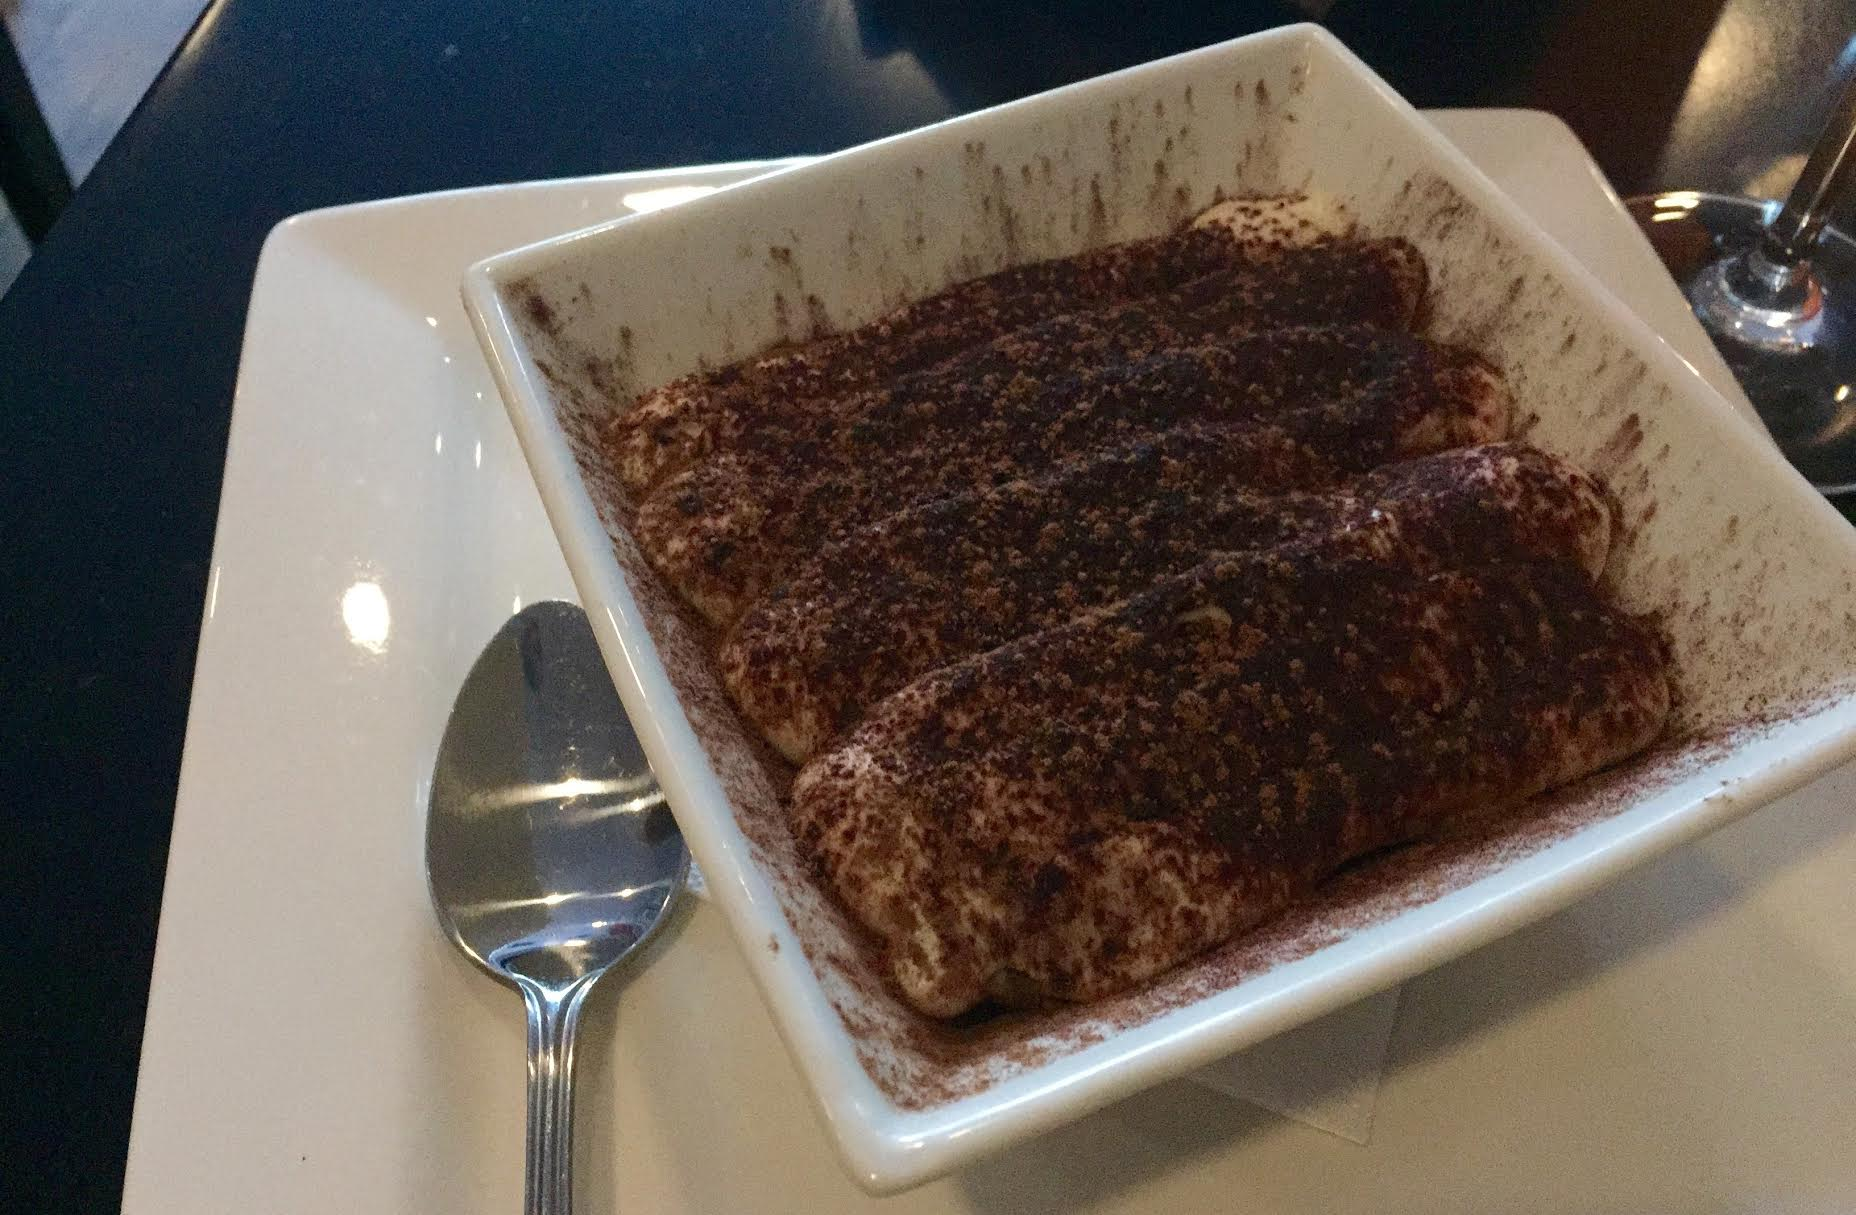 Housemade tiramisu. Photo by Anne DesBrisay